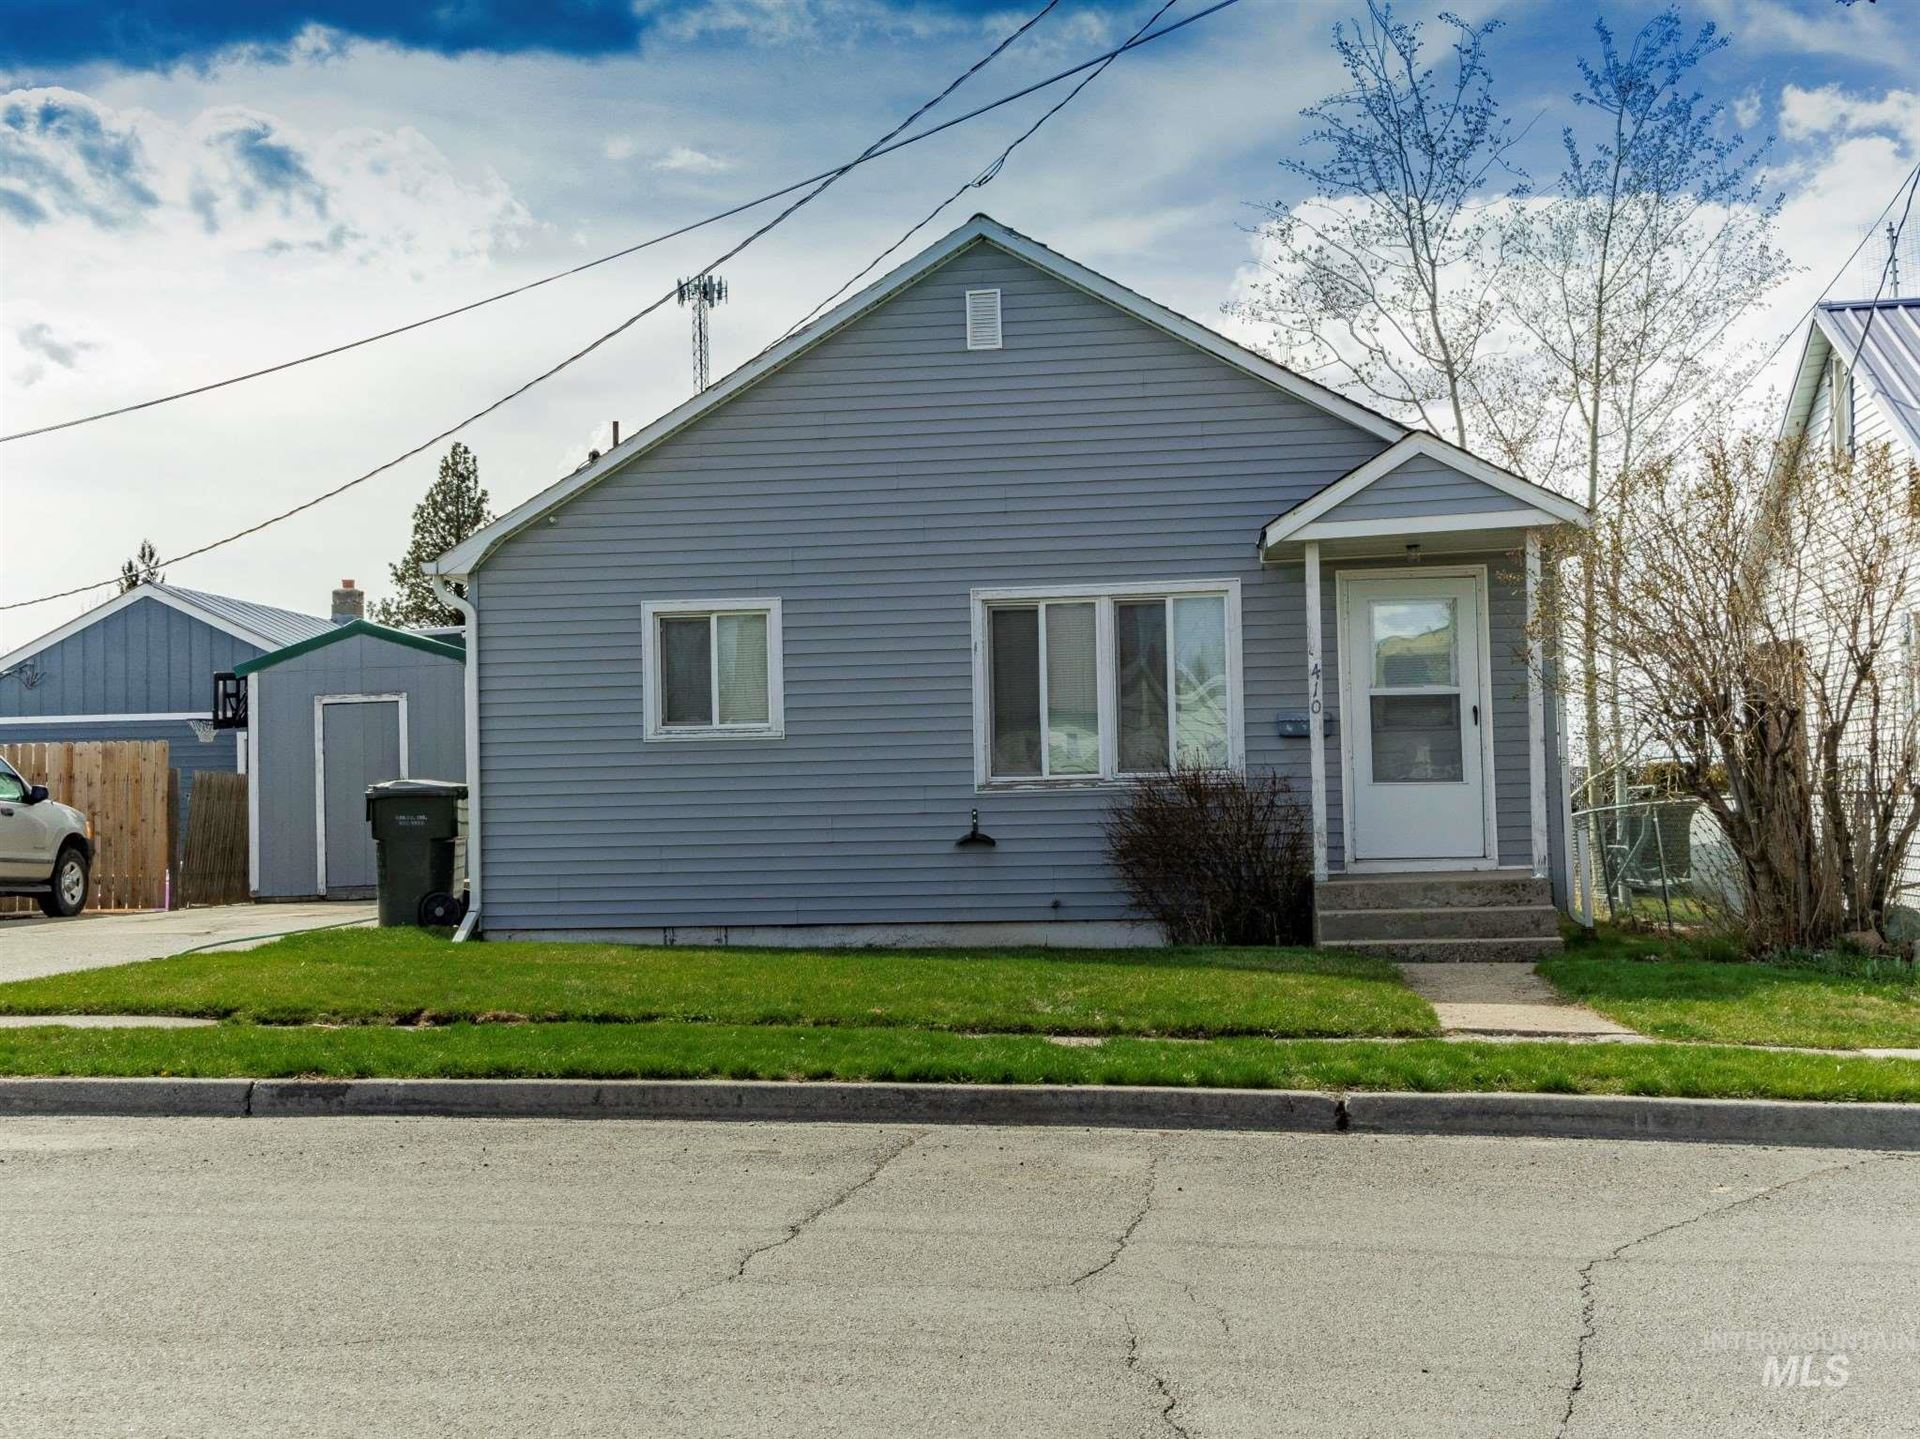 Photo of 410 N B St., Grangeville, ID 83530 (MLS # 98798743)